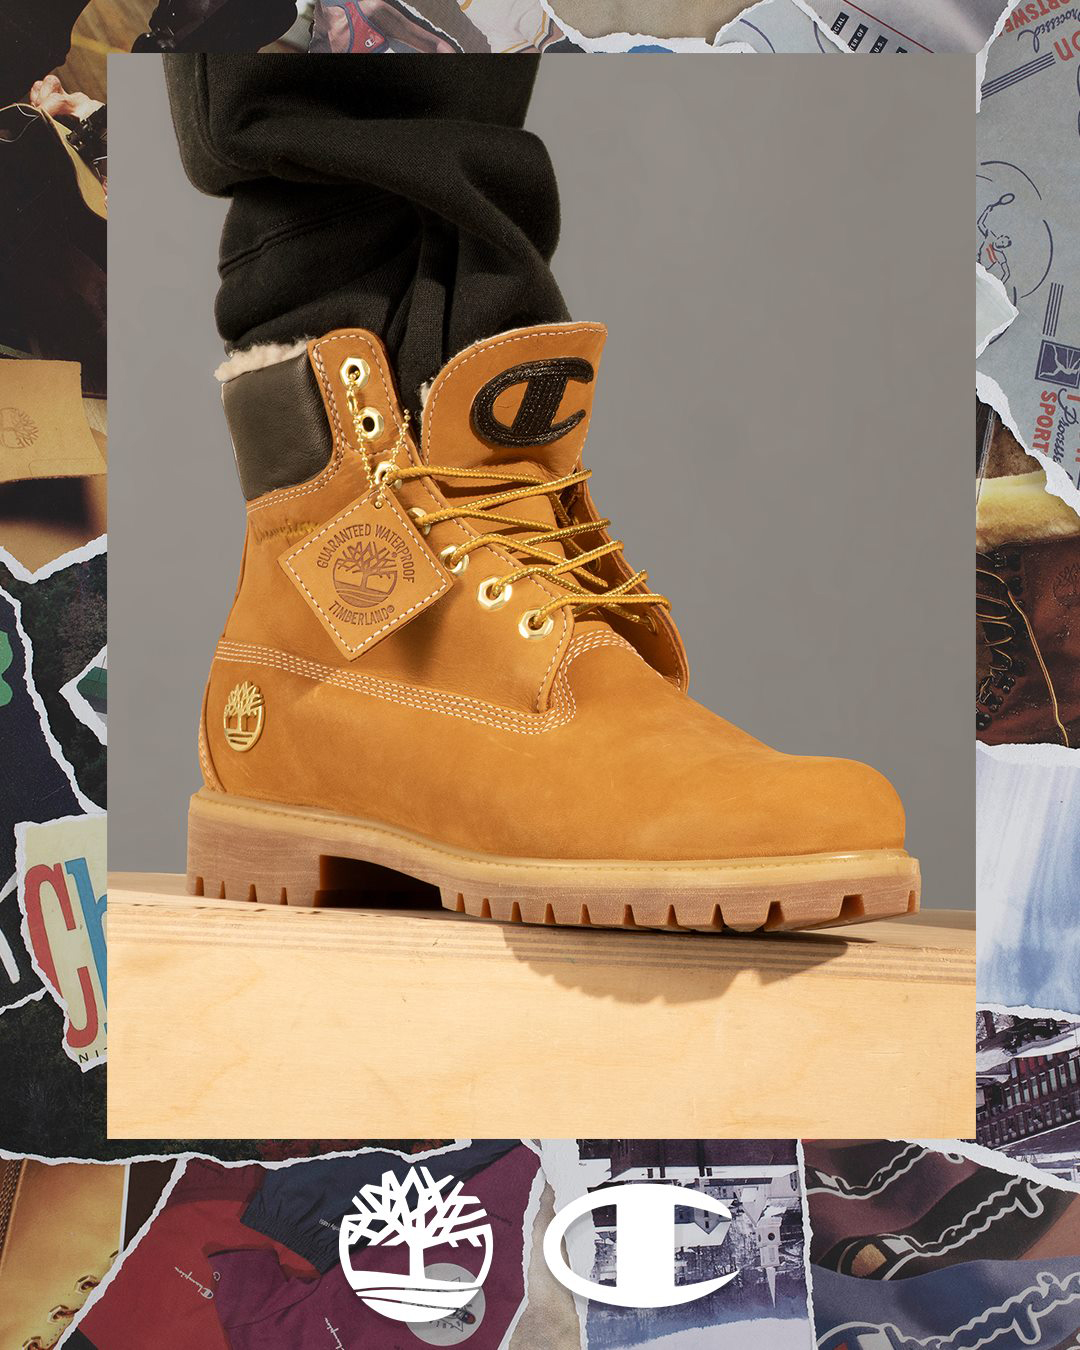 Champion x Timberland Boots and Clothing |